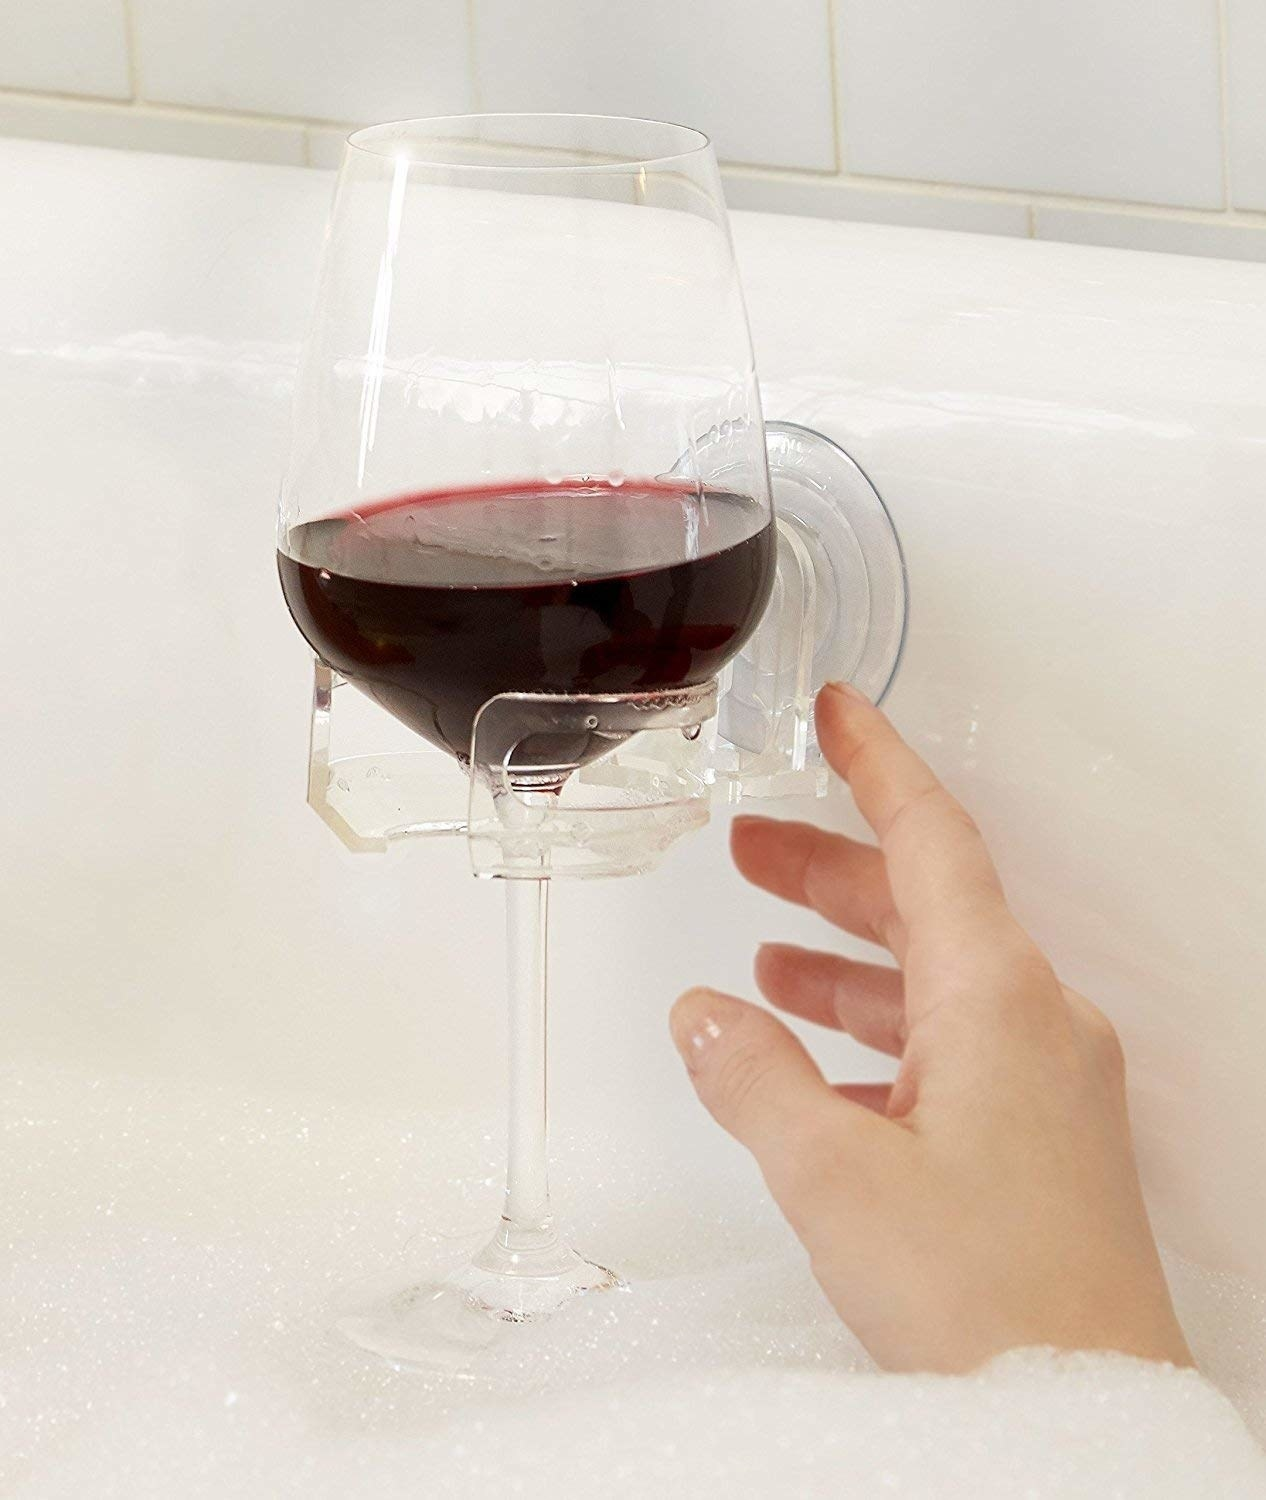 wine glass in holder stuck to side of tub